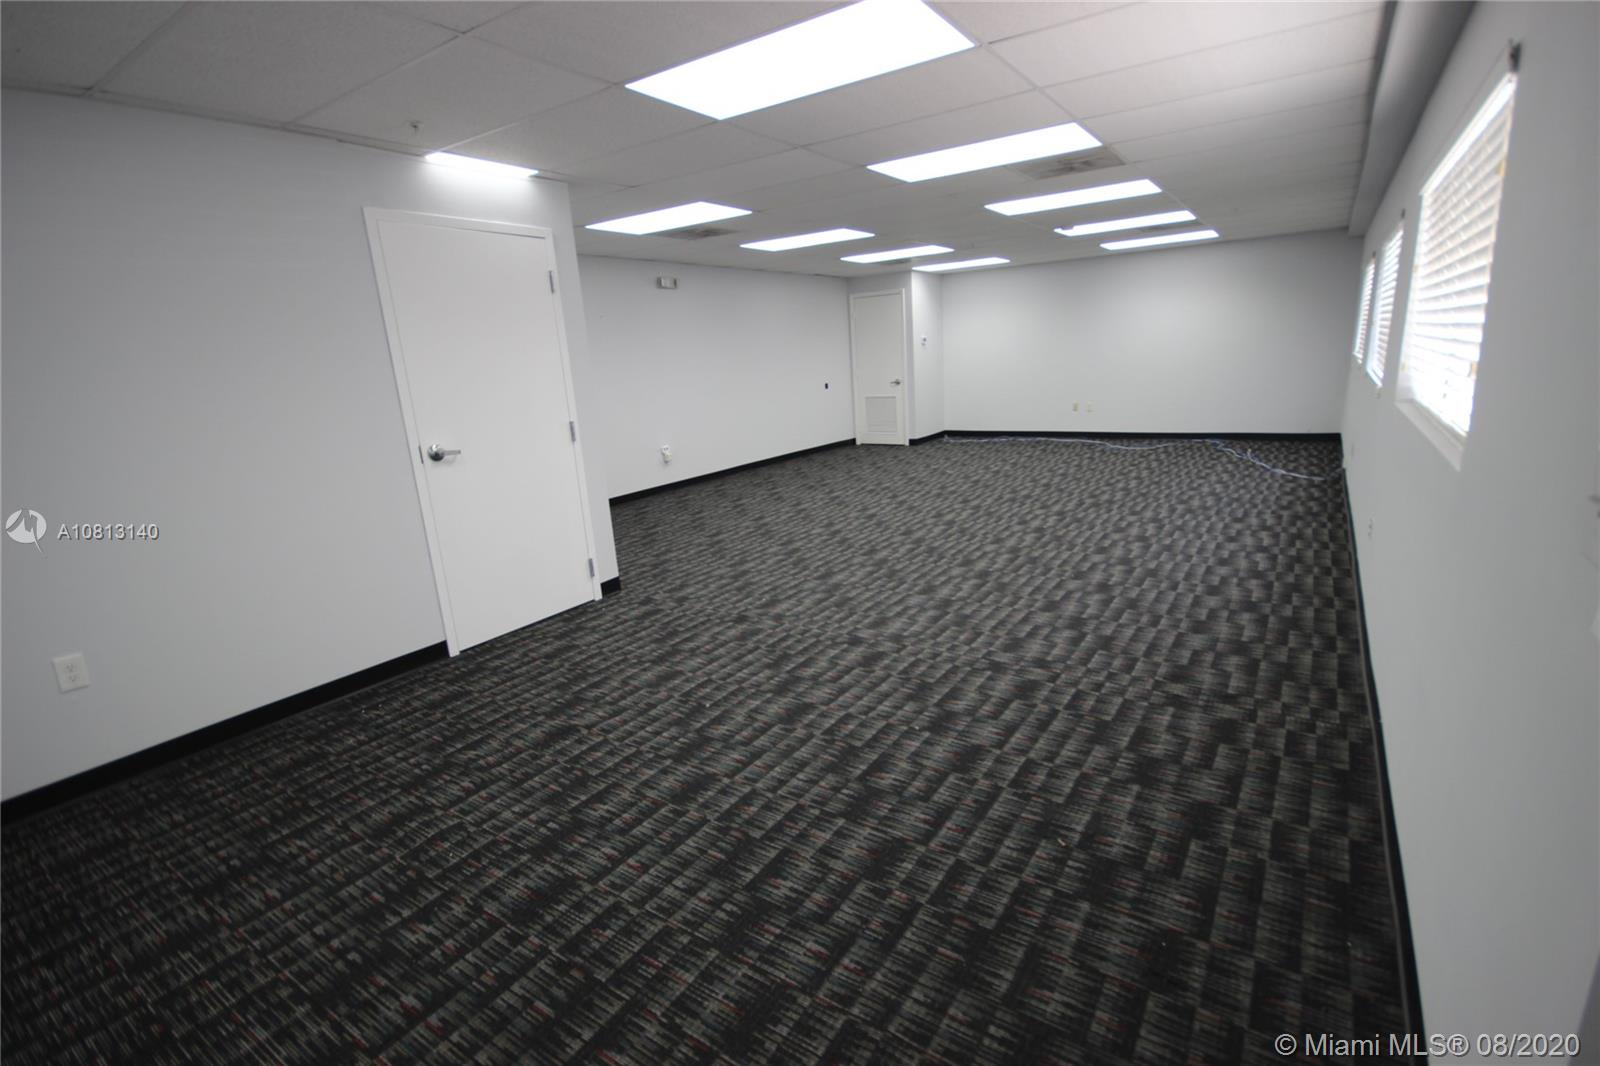 Bottom floor office area +/-800sqft.  New flooring and paint.  Secured, private entrance to office with shared use of bathroom and kitchen.  Located in an excellent location just minutes away from the Turnpike, Dolphin Mall and Miami International Mall.  Includes water, electricity, security service, internet and 3 assigned parking spaces.There is also guest parking to be shared by the community.  Available immediately. Call agent for more details.